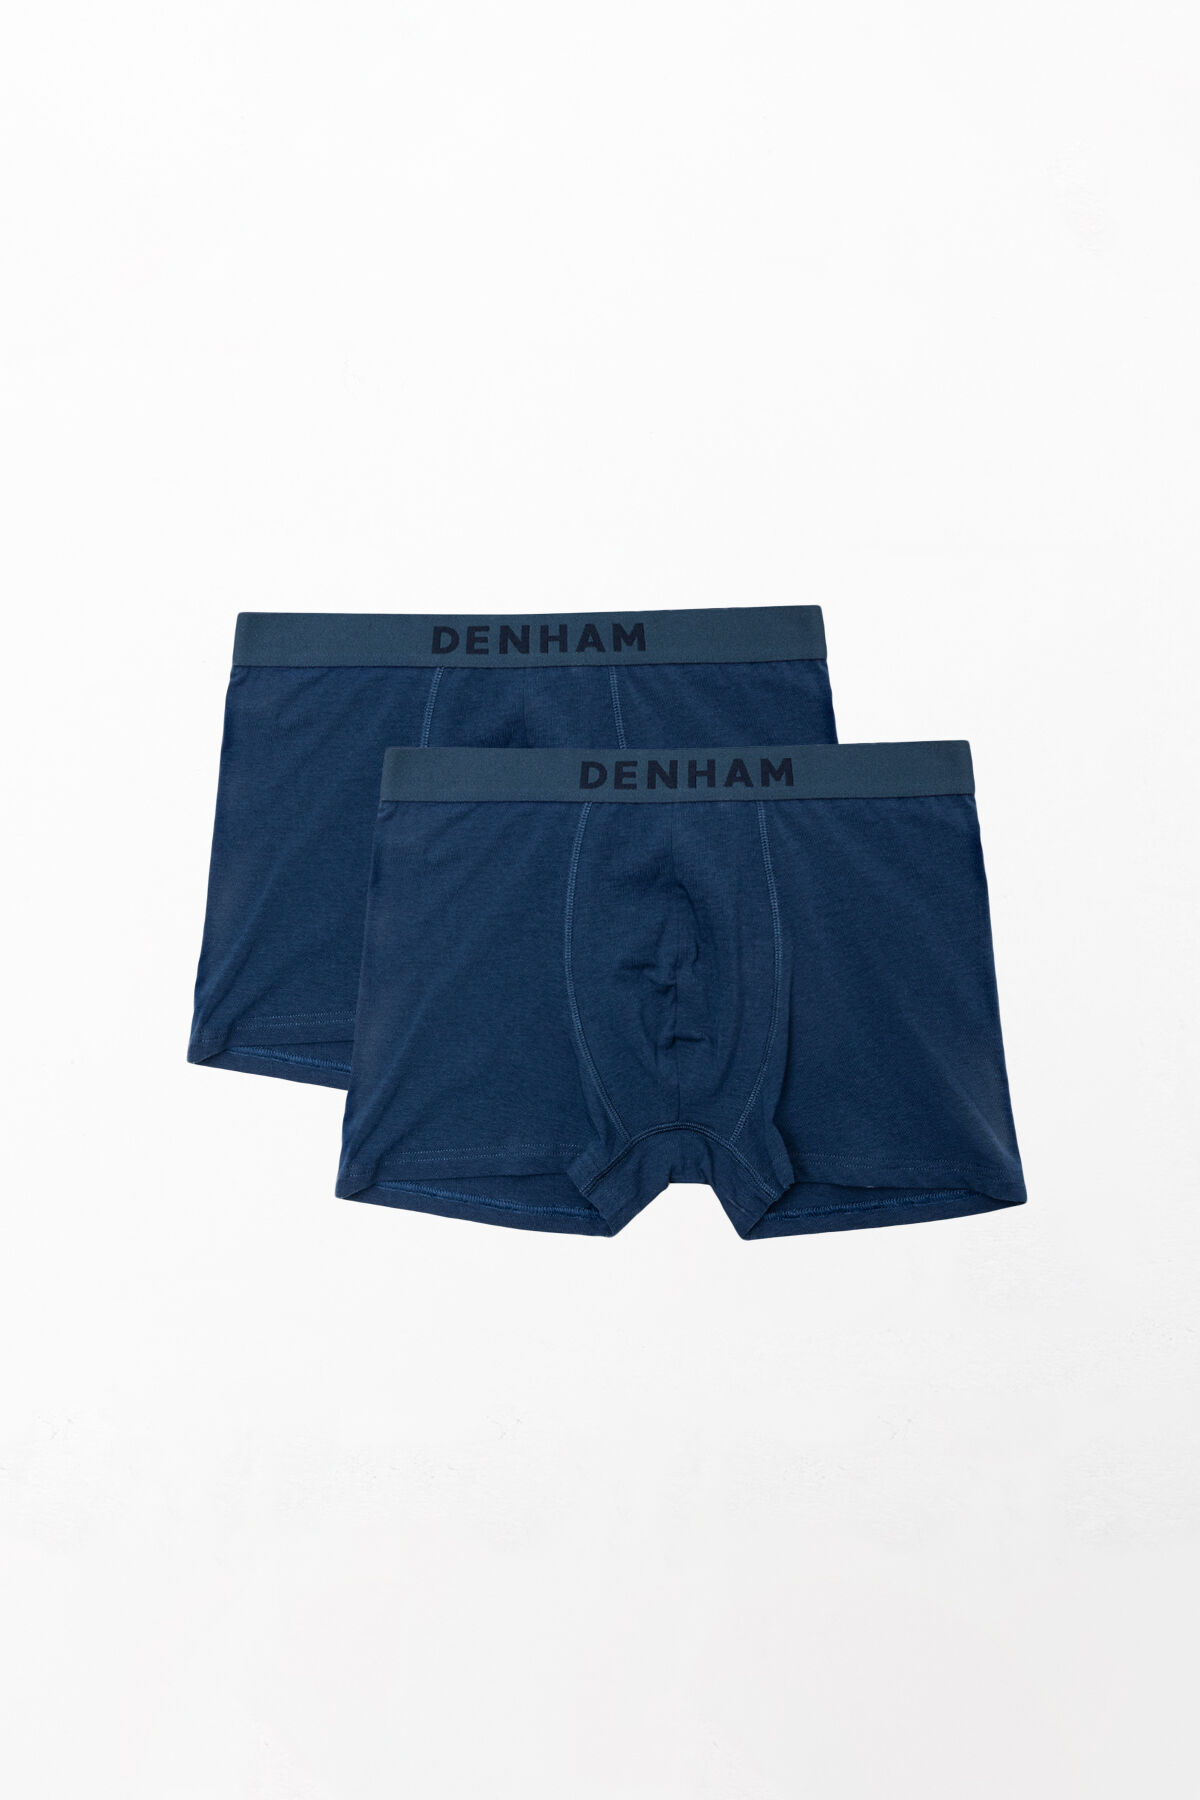 BOXER BRIEF BACO - 2 PACK